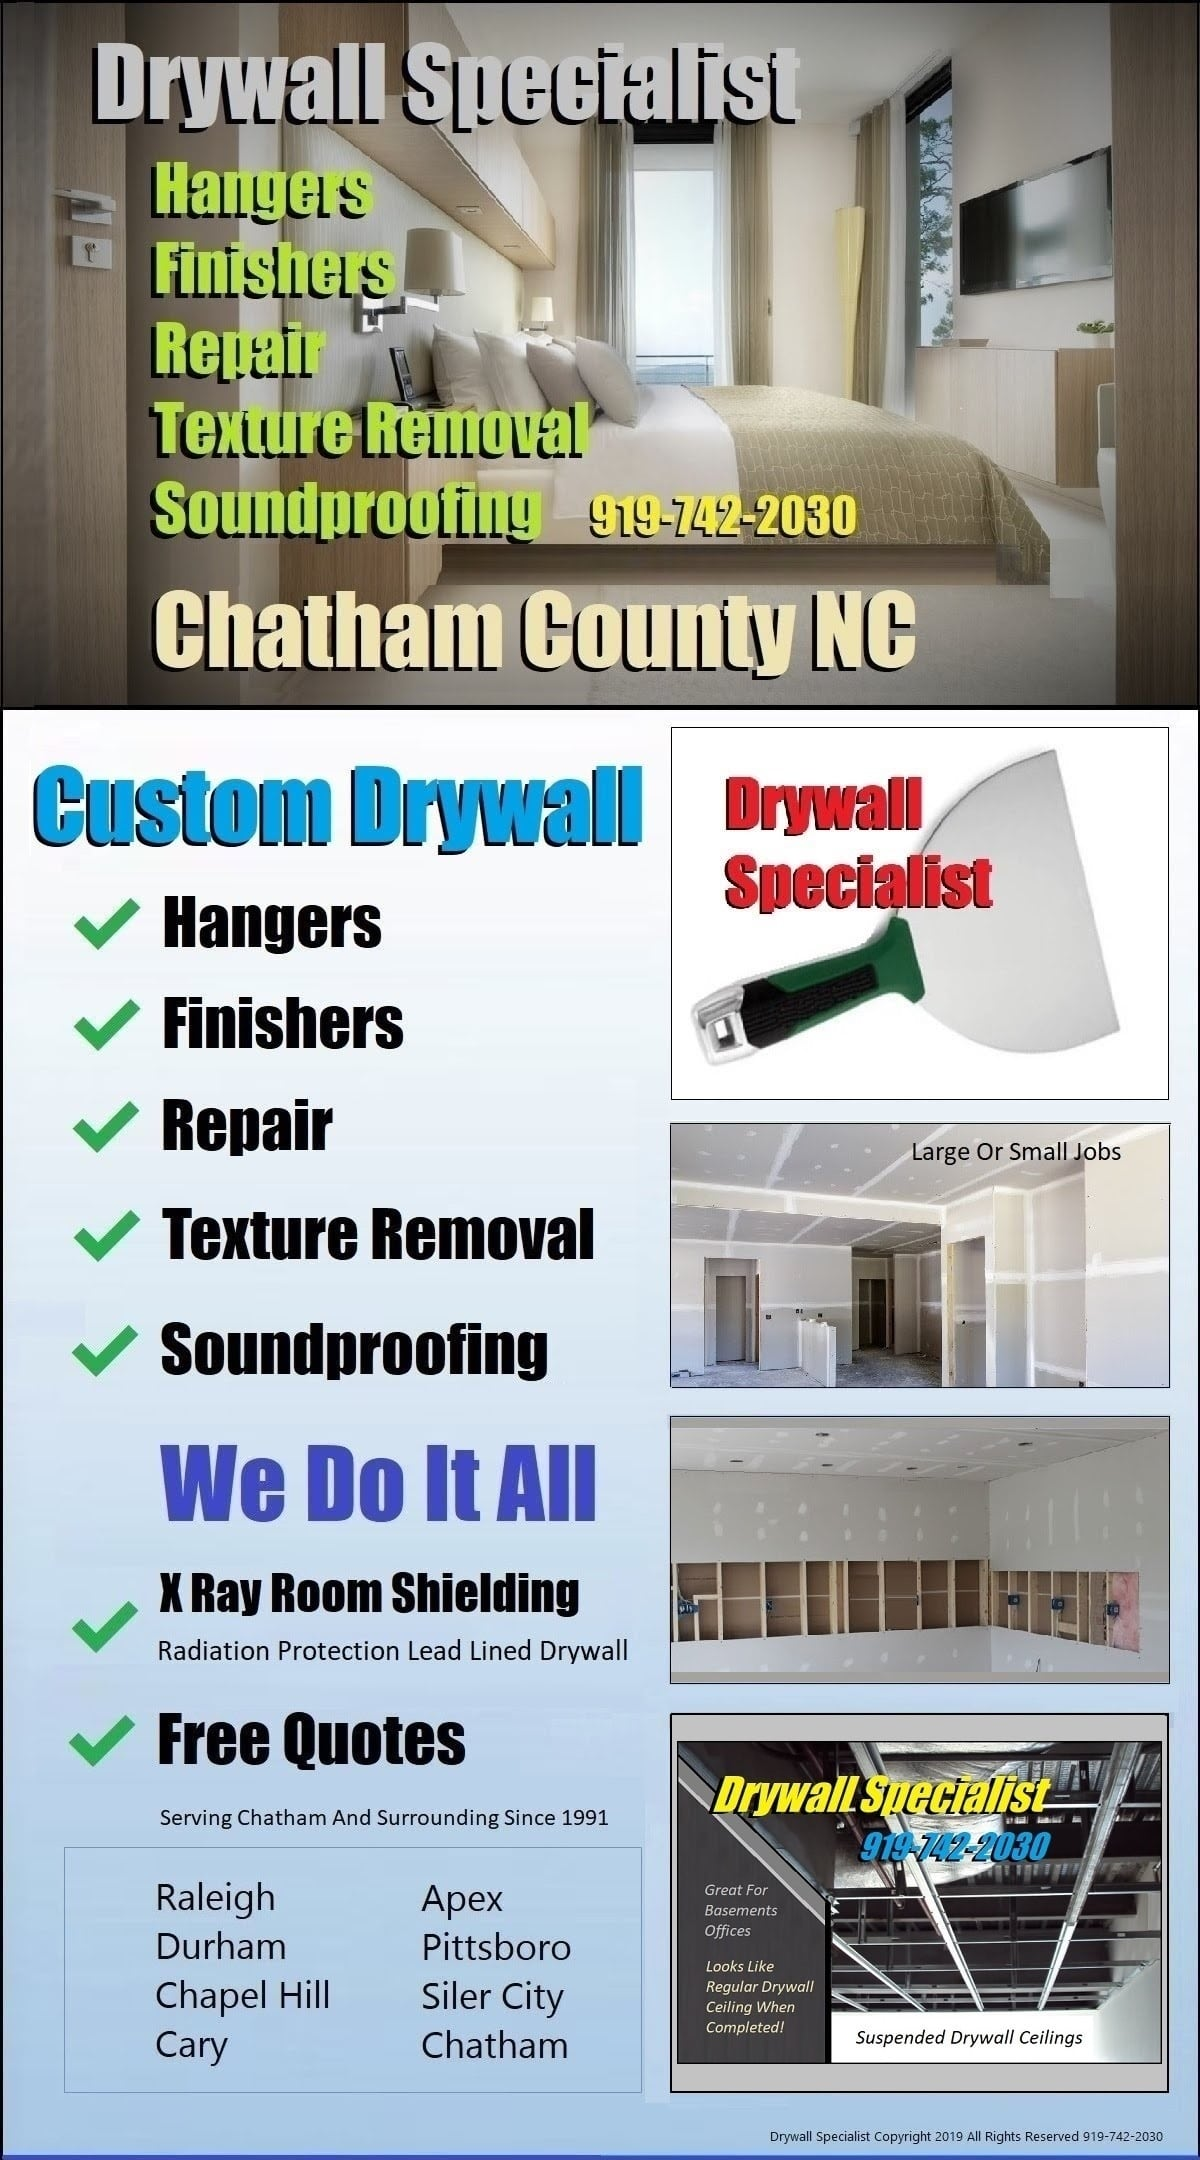 Nextdoor Plaster Wall Ceiling Refurbish Restoration Resurfacing Contractors In Pittsboro NC